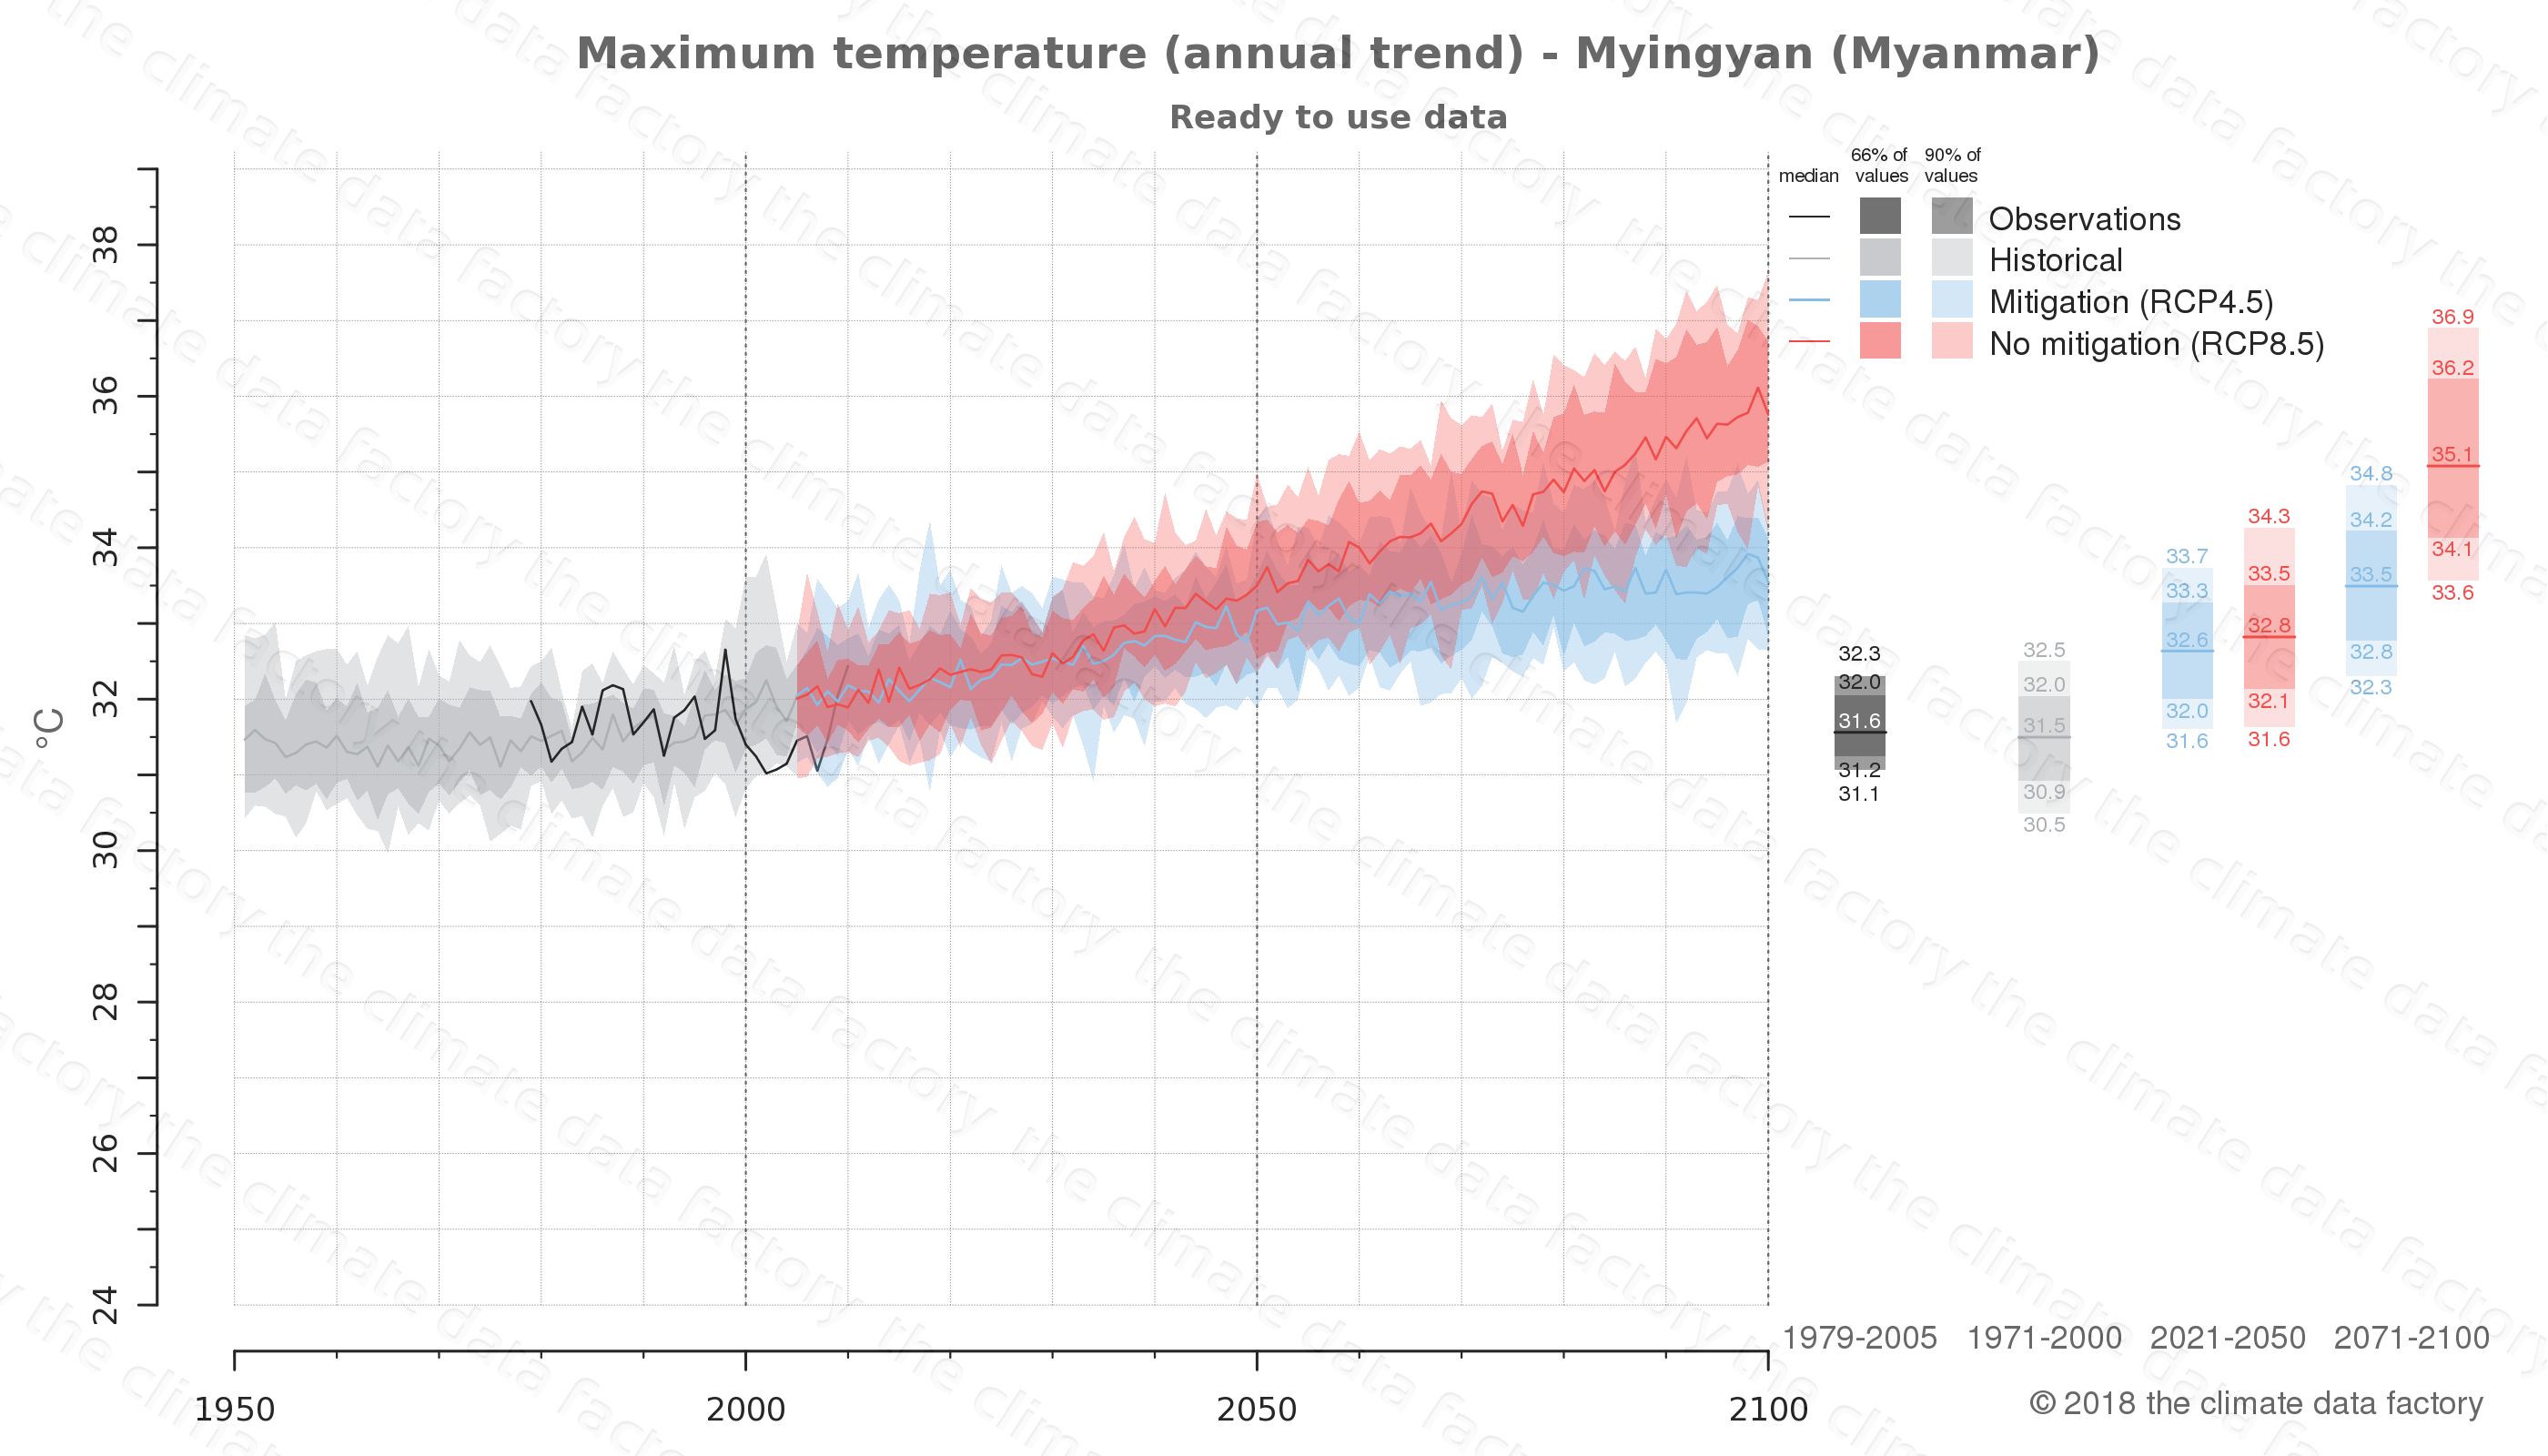 climate change data policy adaptation climate graph city data maximum-temperature myingyan myanmar